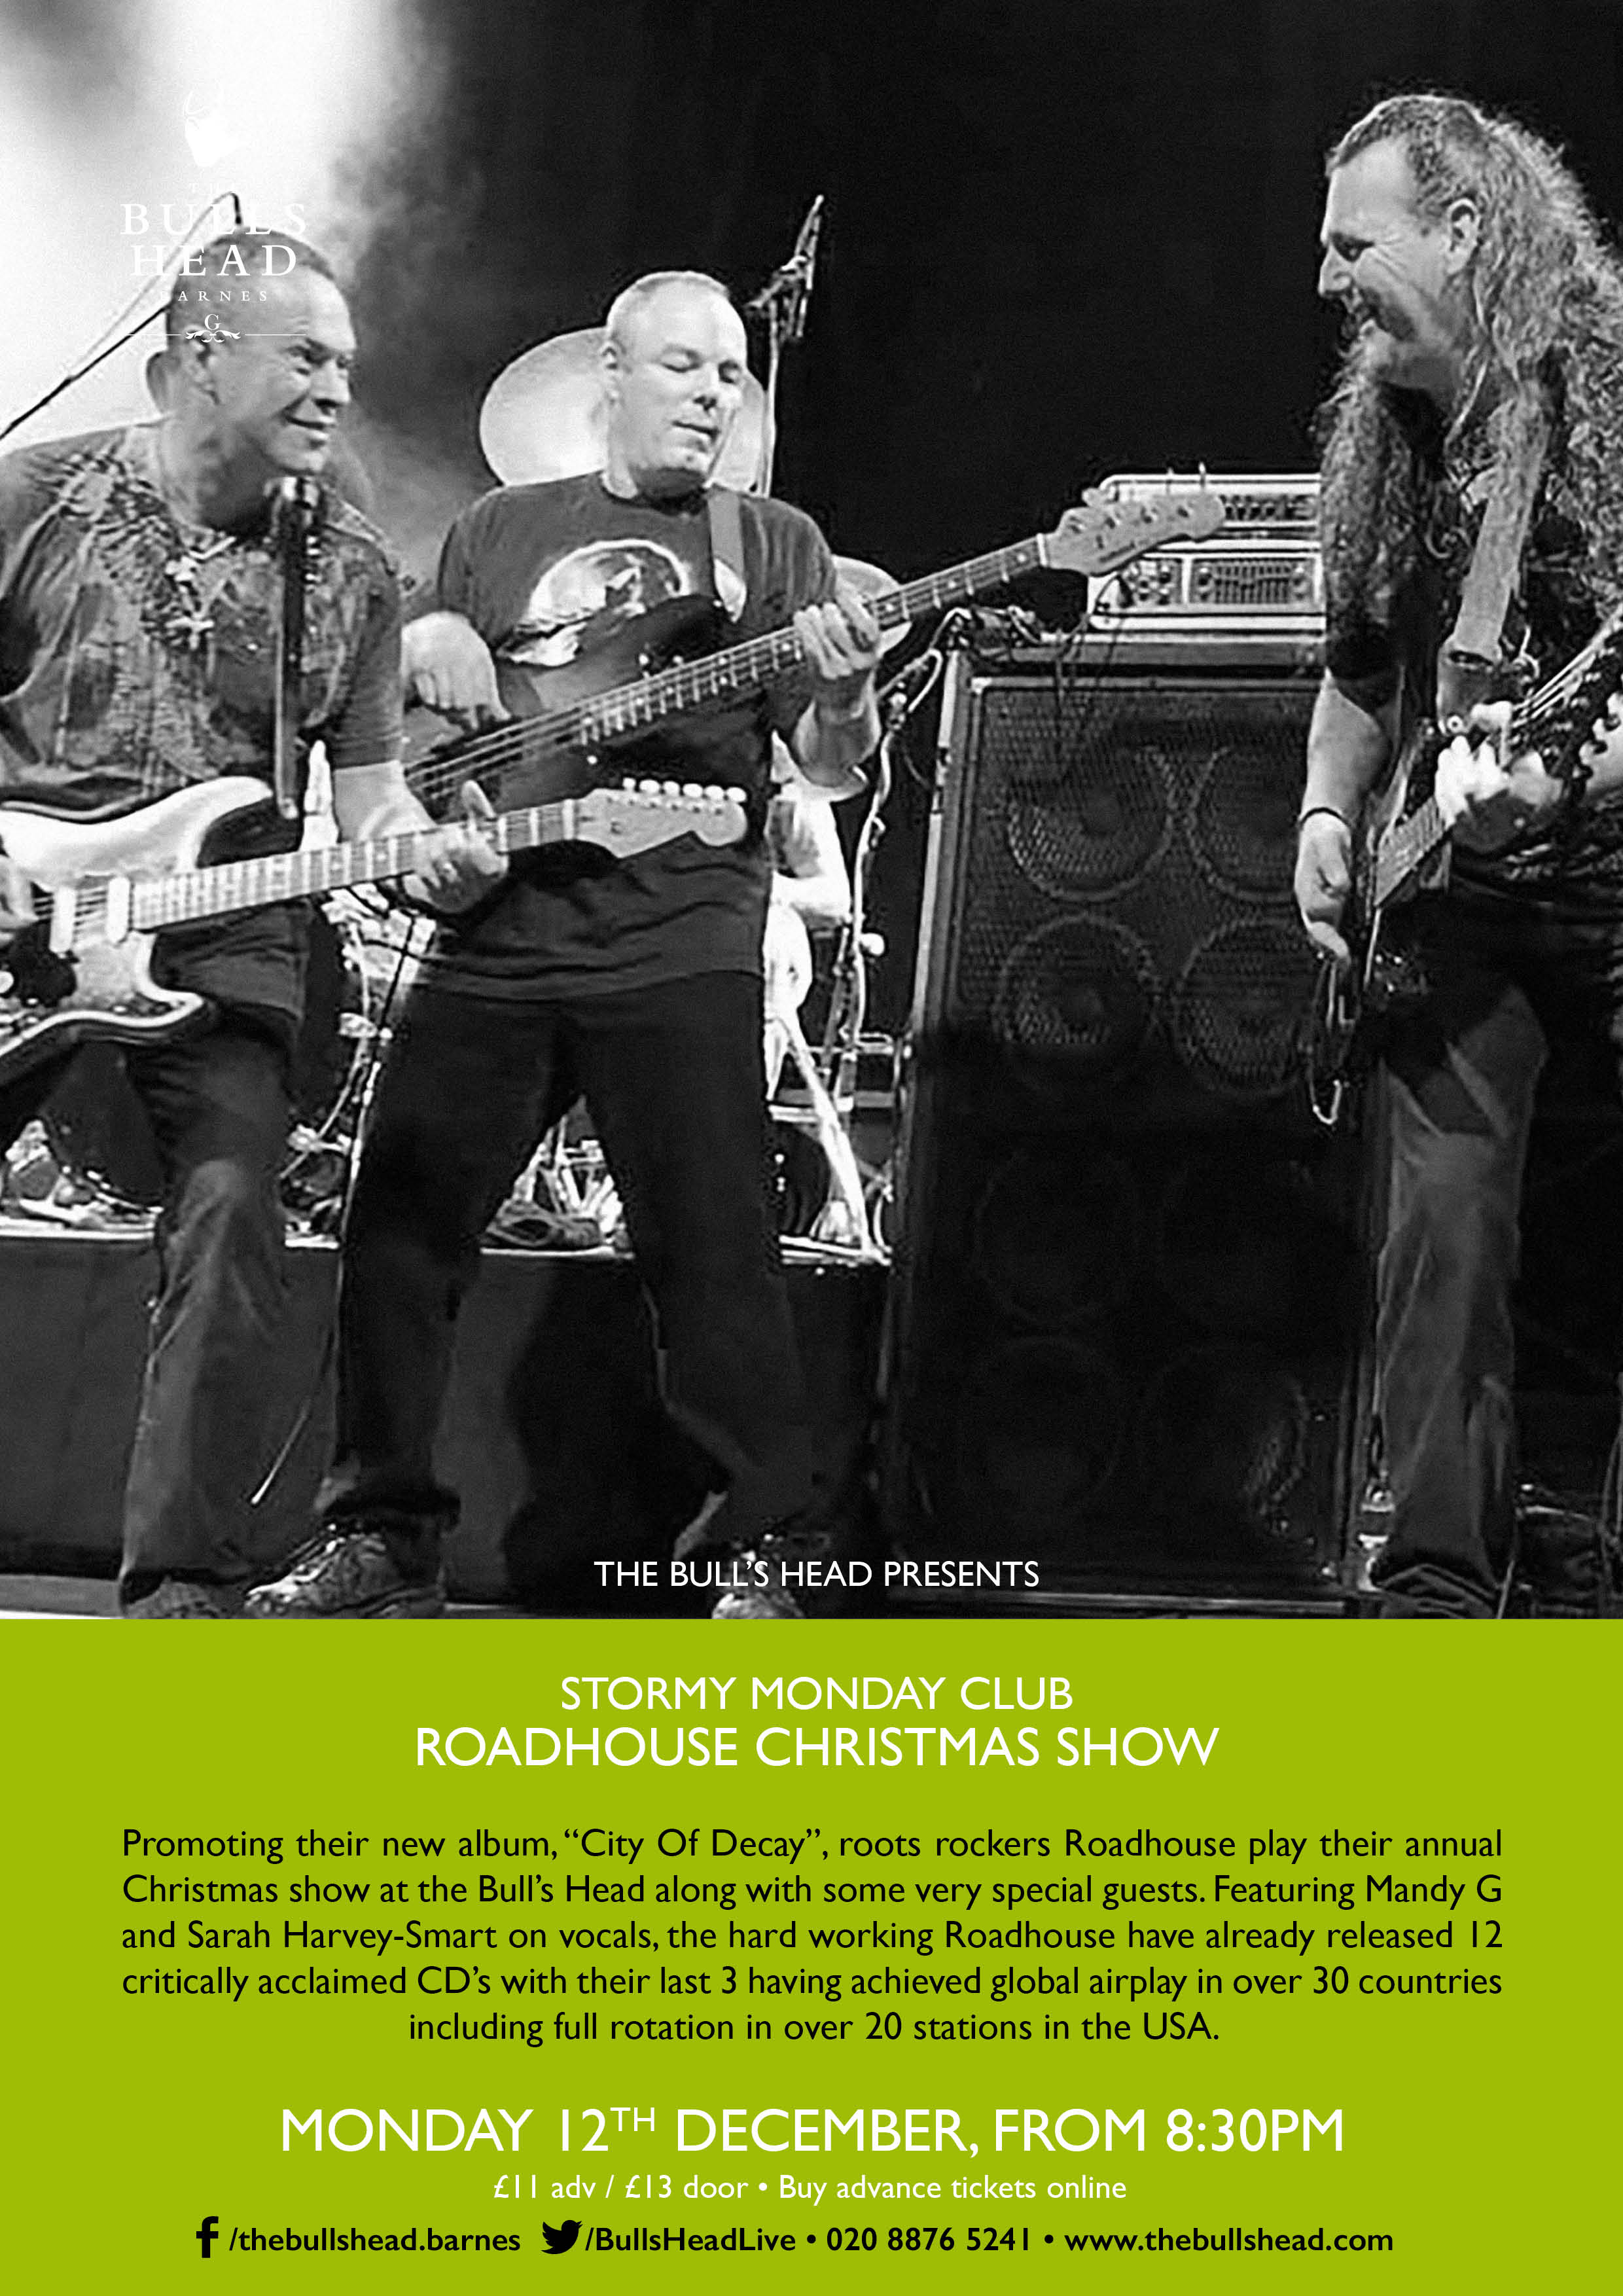 Stormy Monday Club Present the Roadhouse Xmas Show